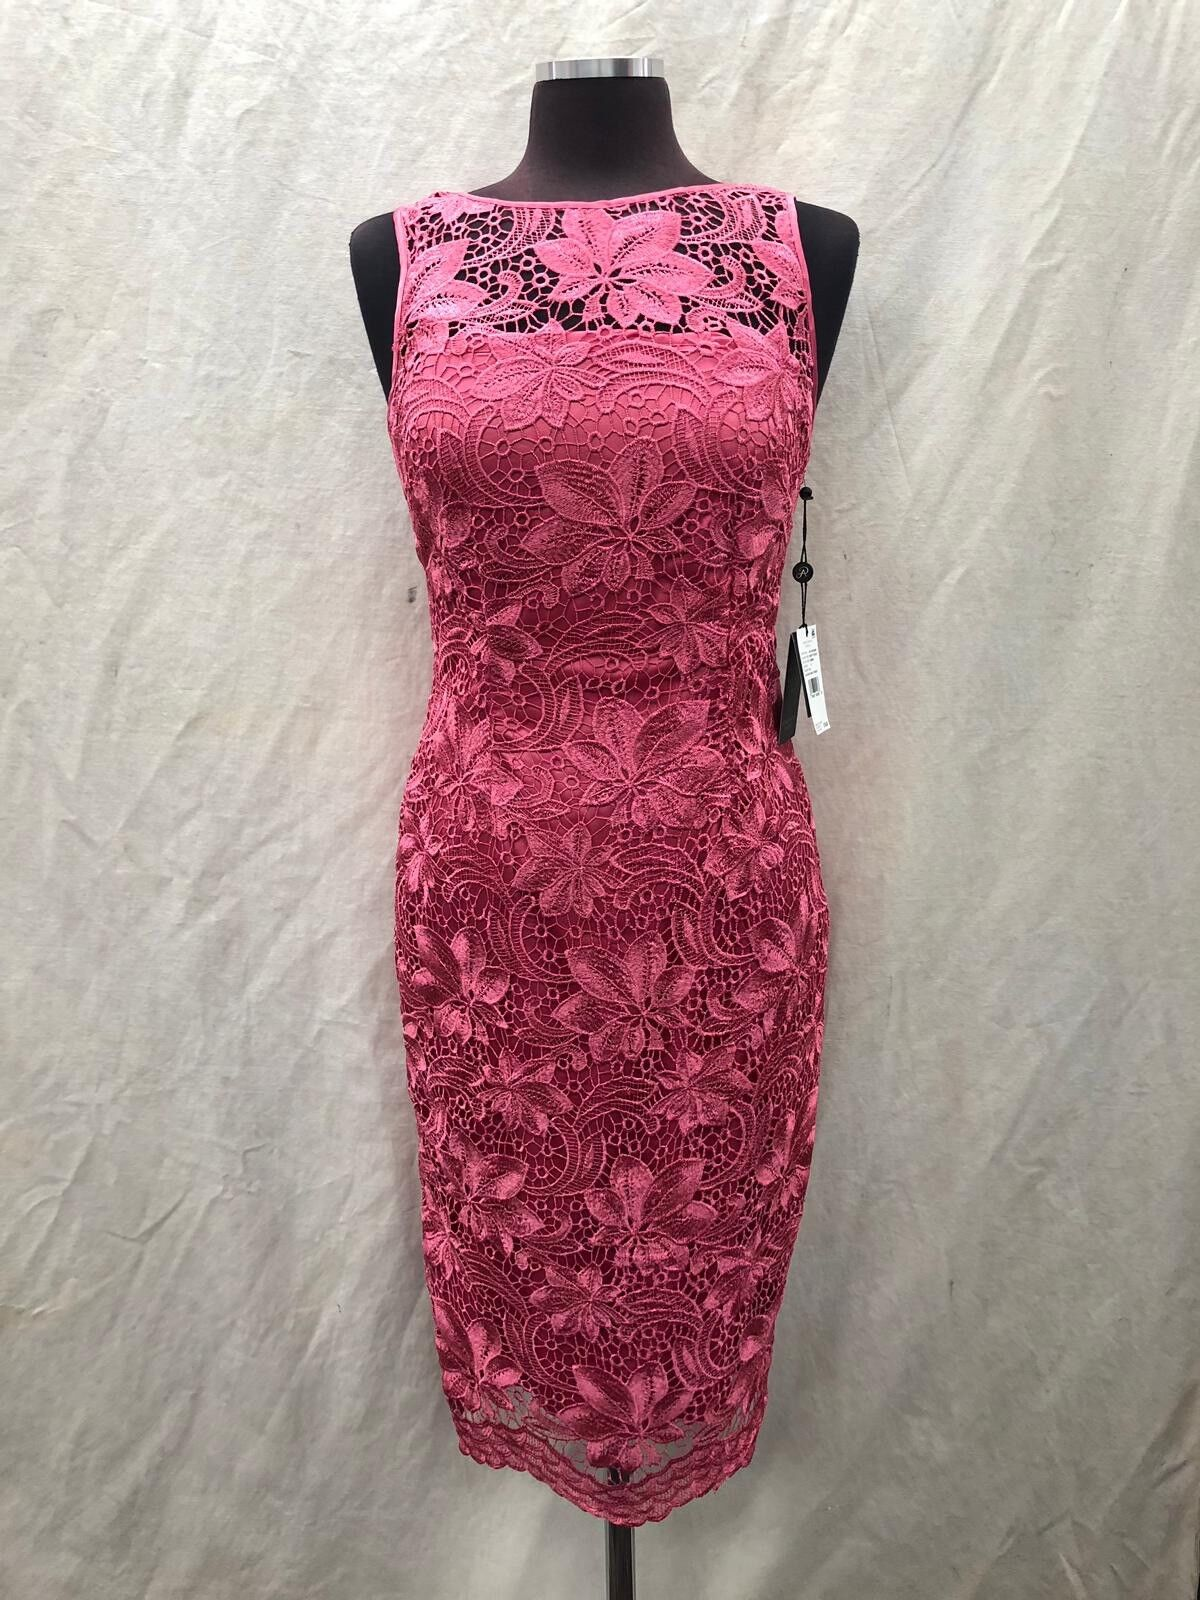 ADRIANNA PAPELL DRESS SIZE 6 RETAIL LENGTH 42  NEW WITH TAG MIST pink